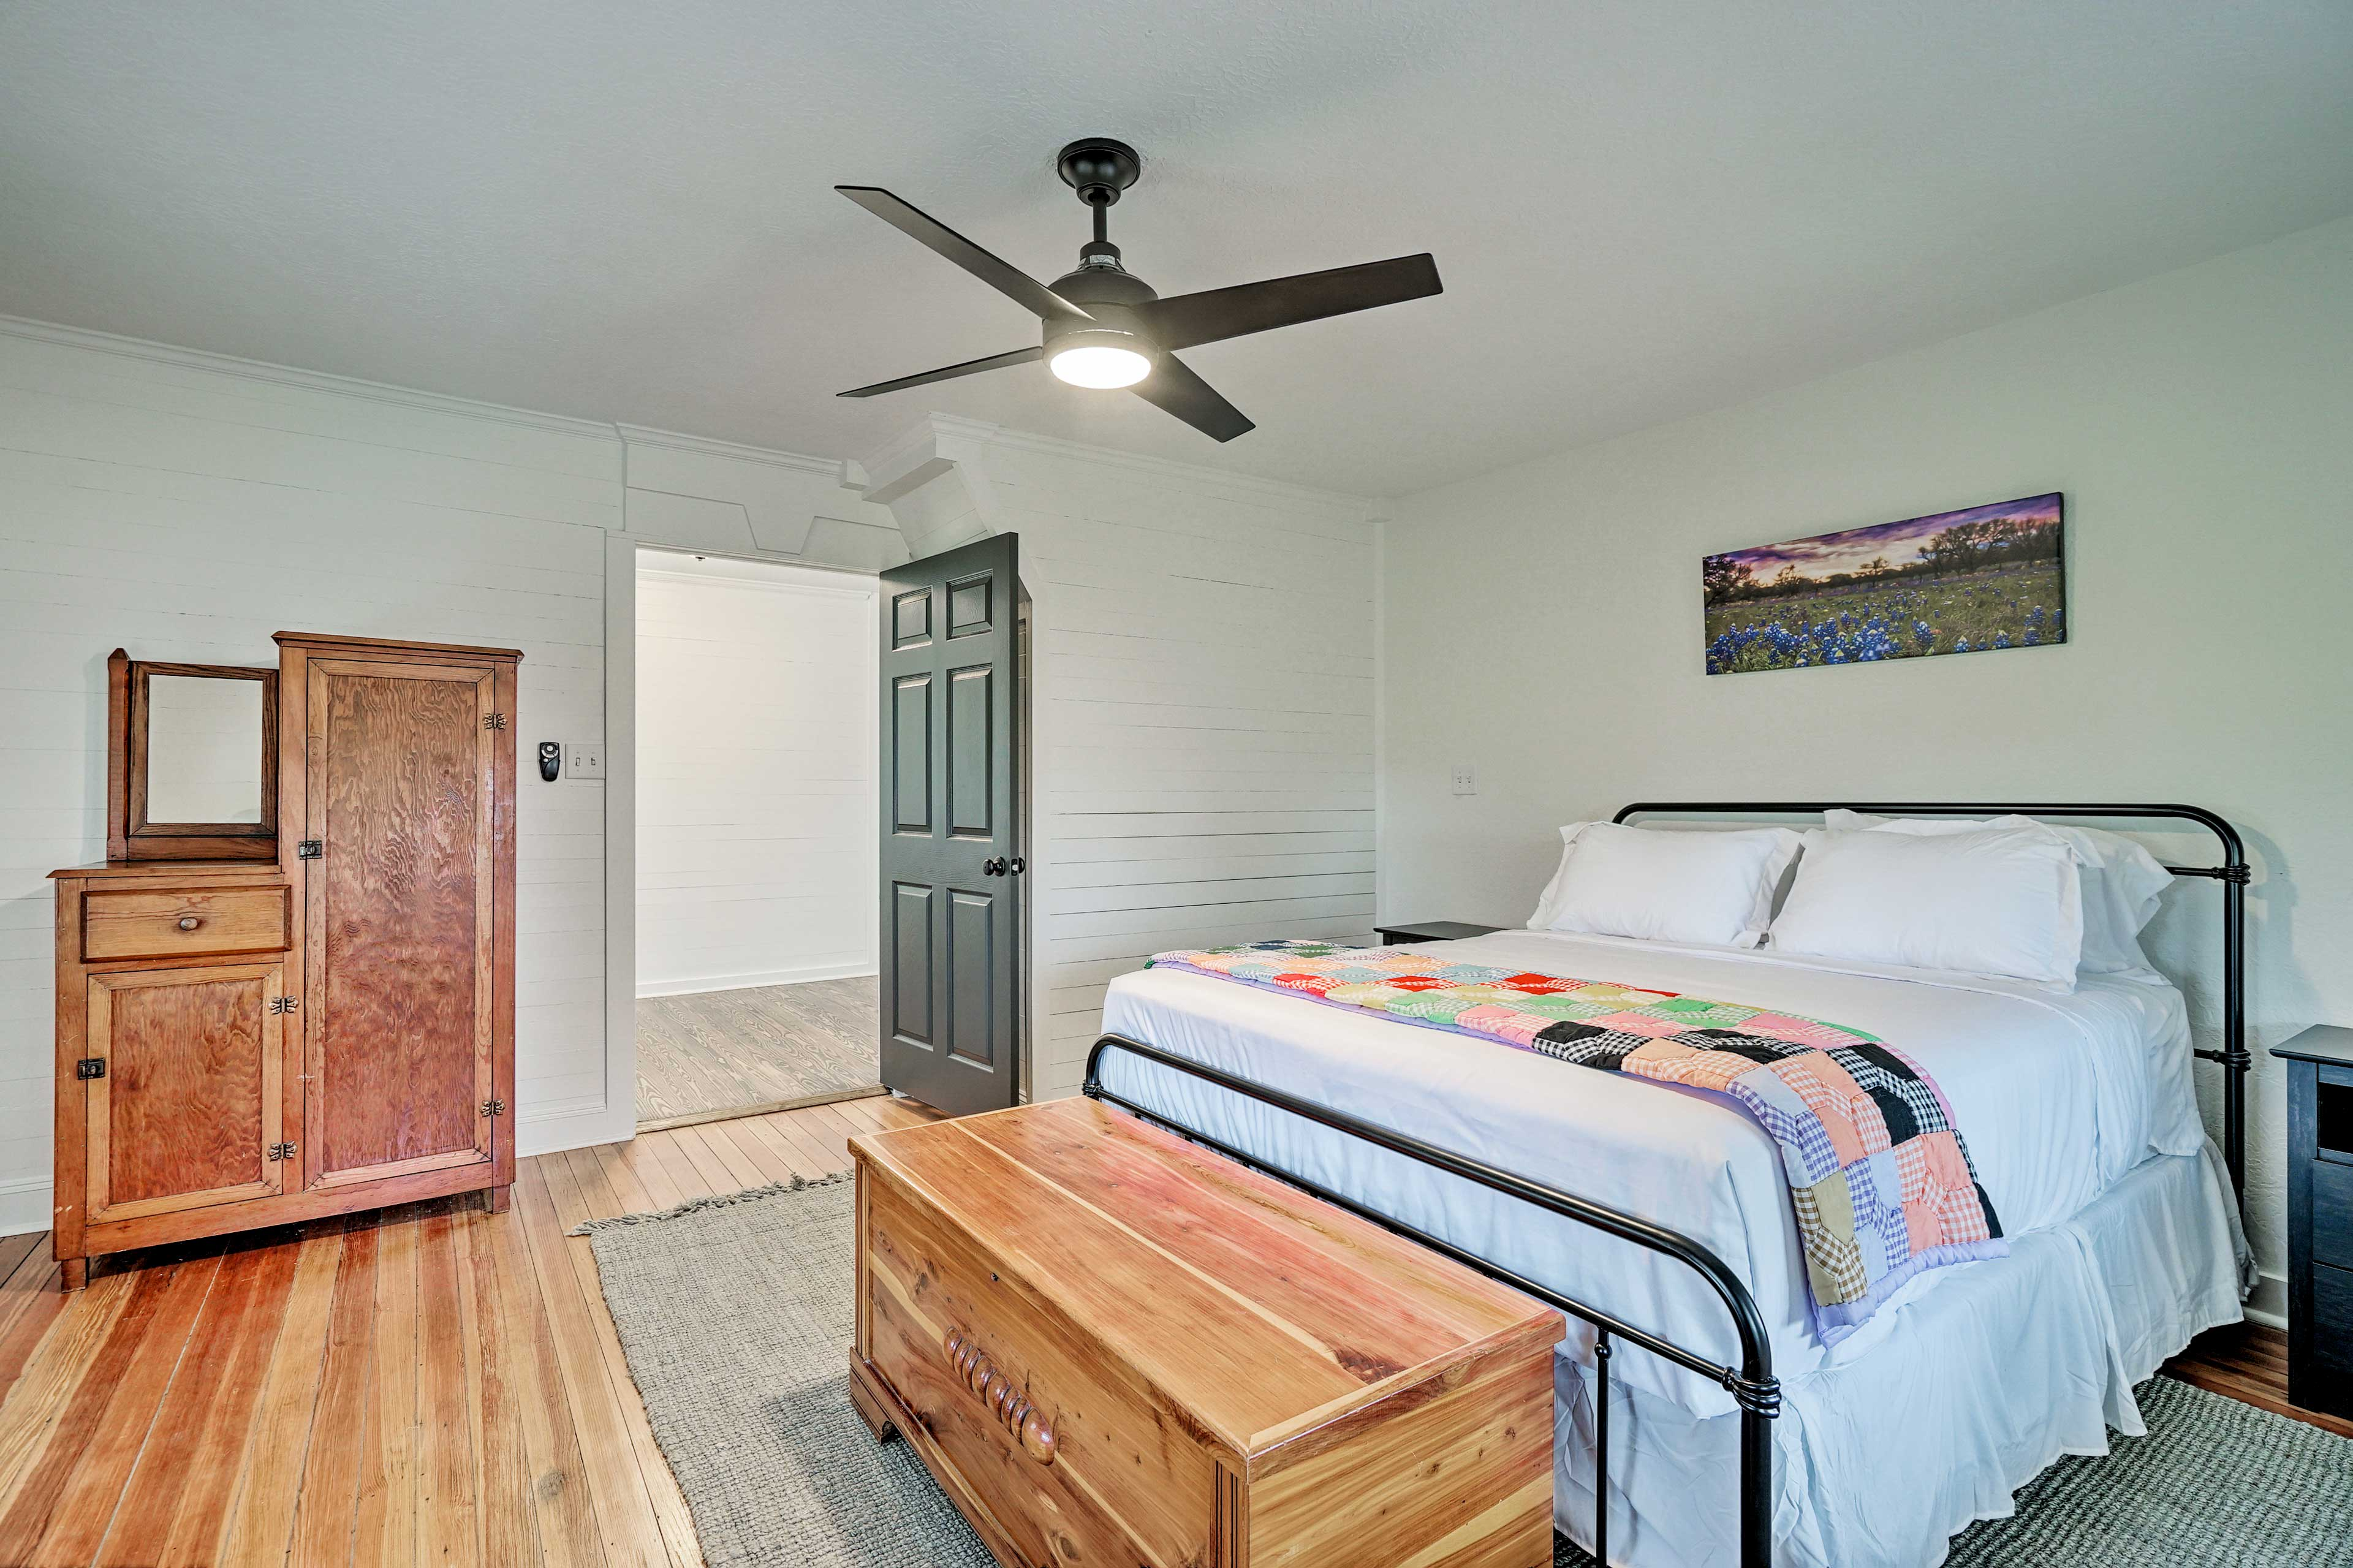 Get some rest on the queen bed in this room.